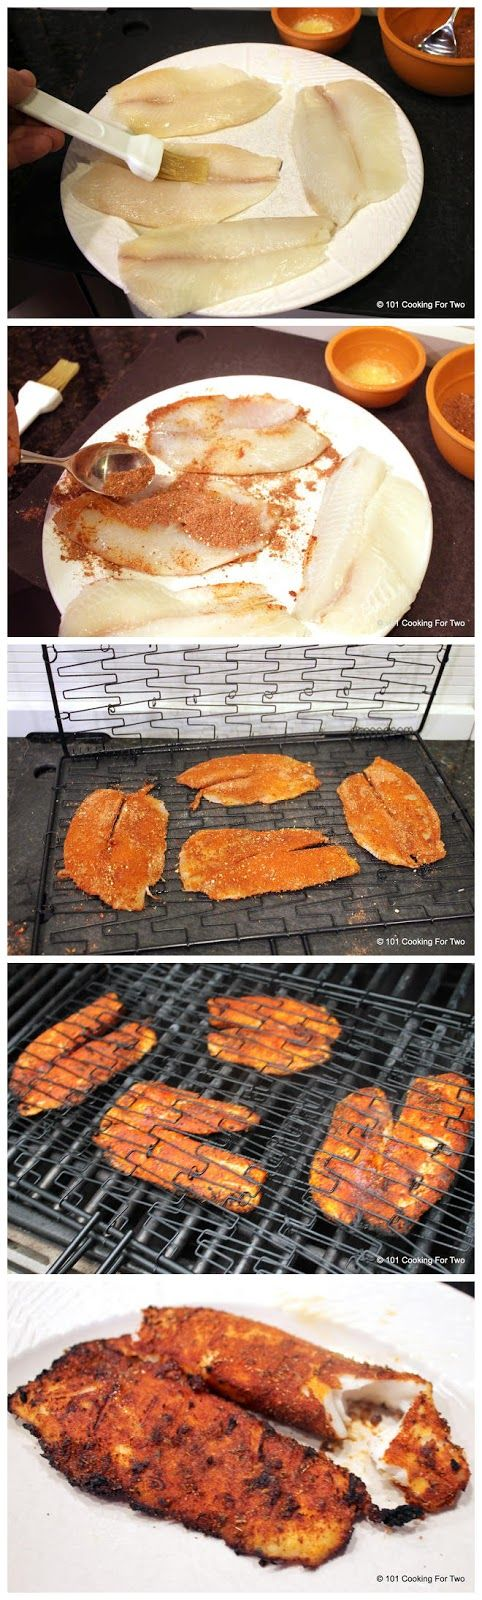 Sweet and smokey blackened tilapia! Jump start a healthier lifestyle with us at seasonproducts.com!